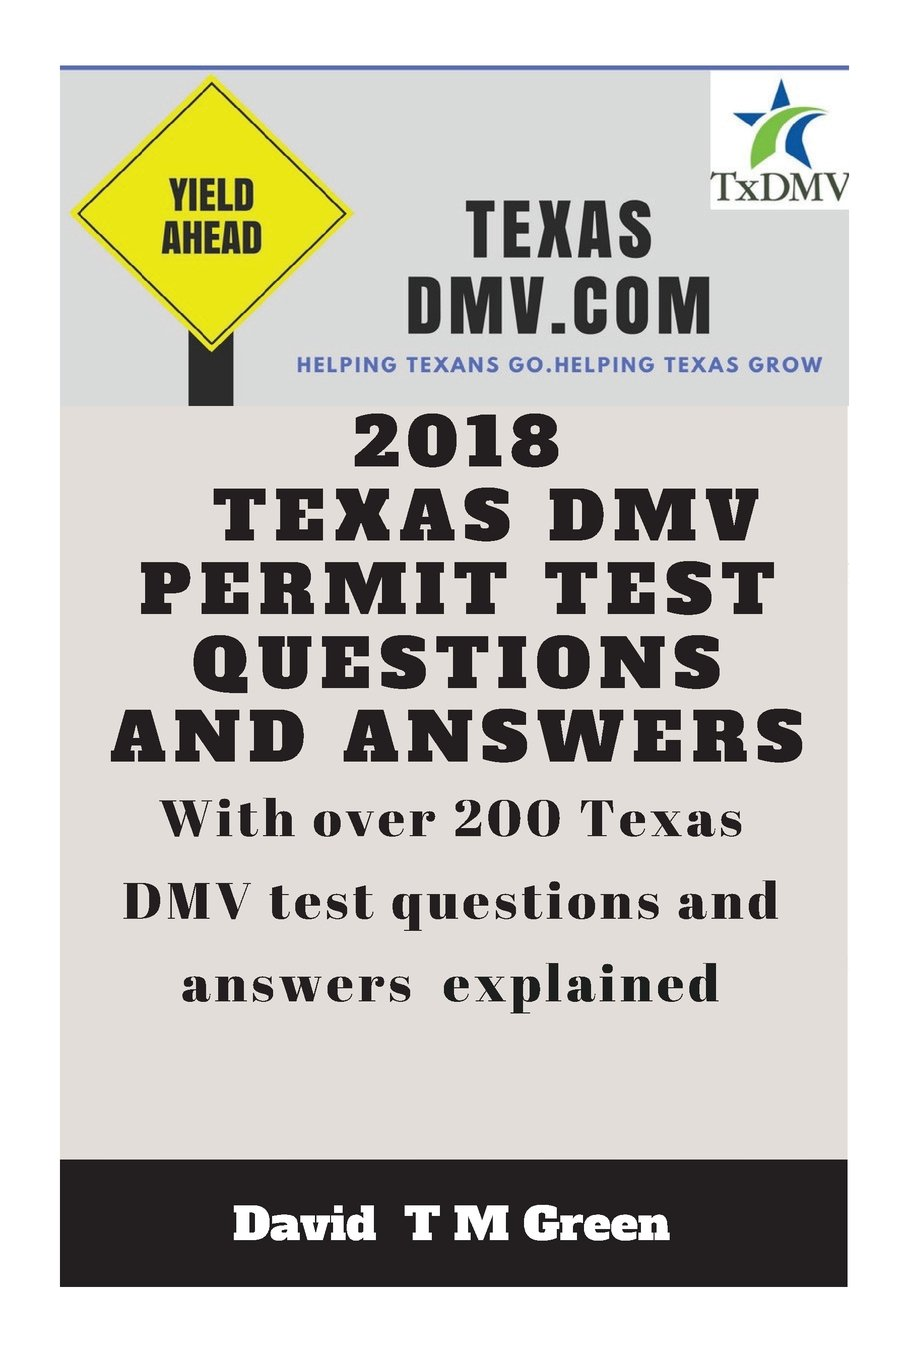 2018 Texas DMV Test Questions Ans Answers: Over 200 Texas DMV Questions  Answered and Explained Paperback – May 18, 2018